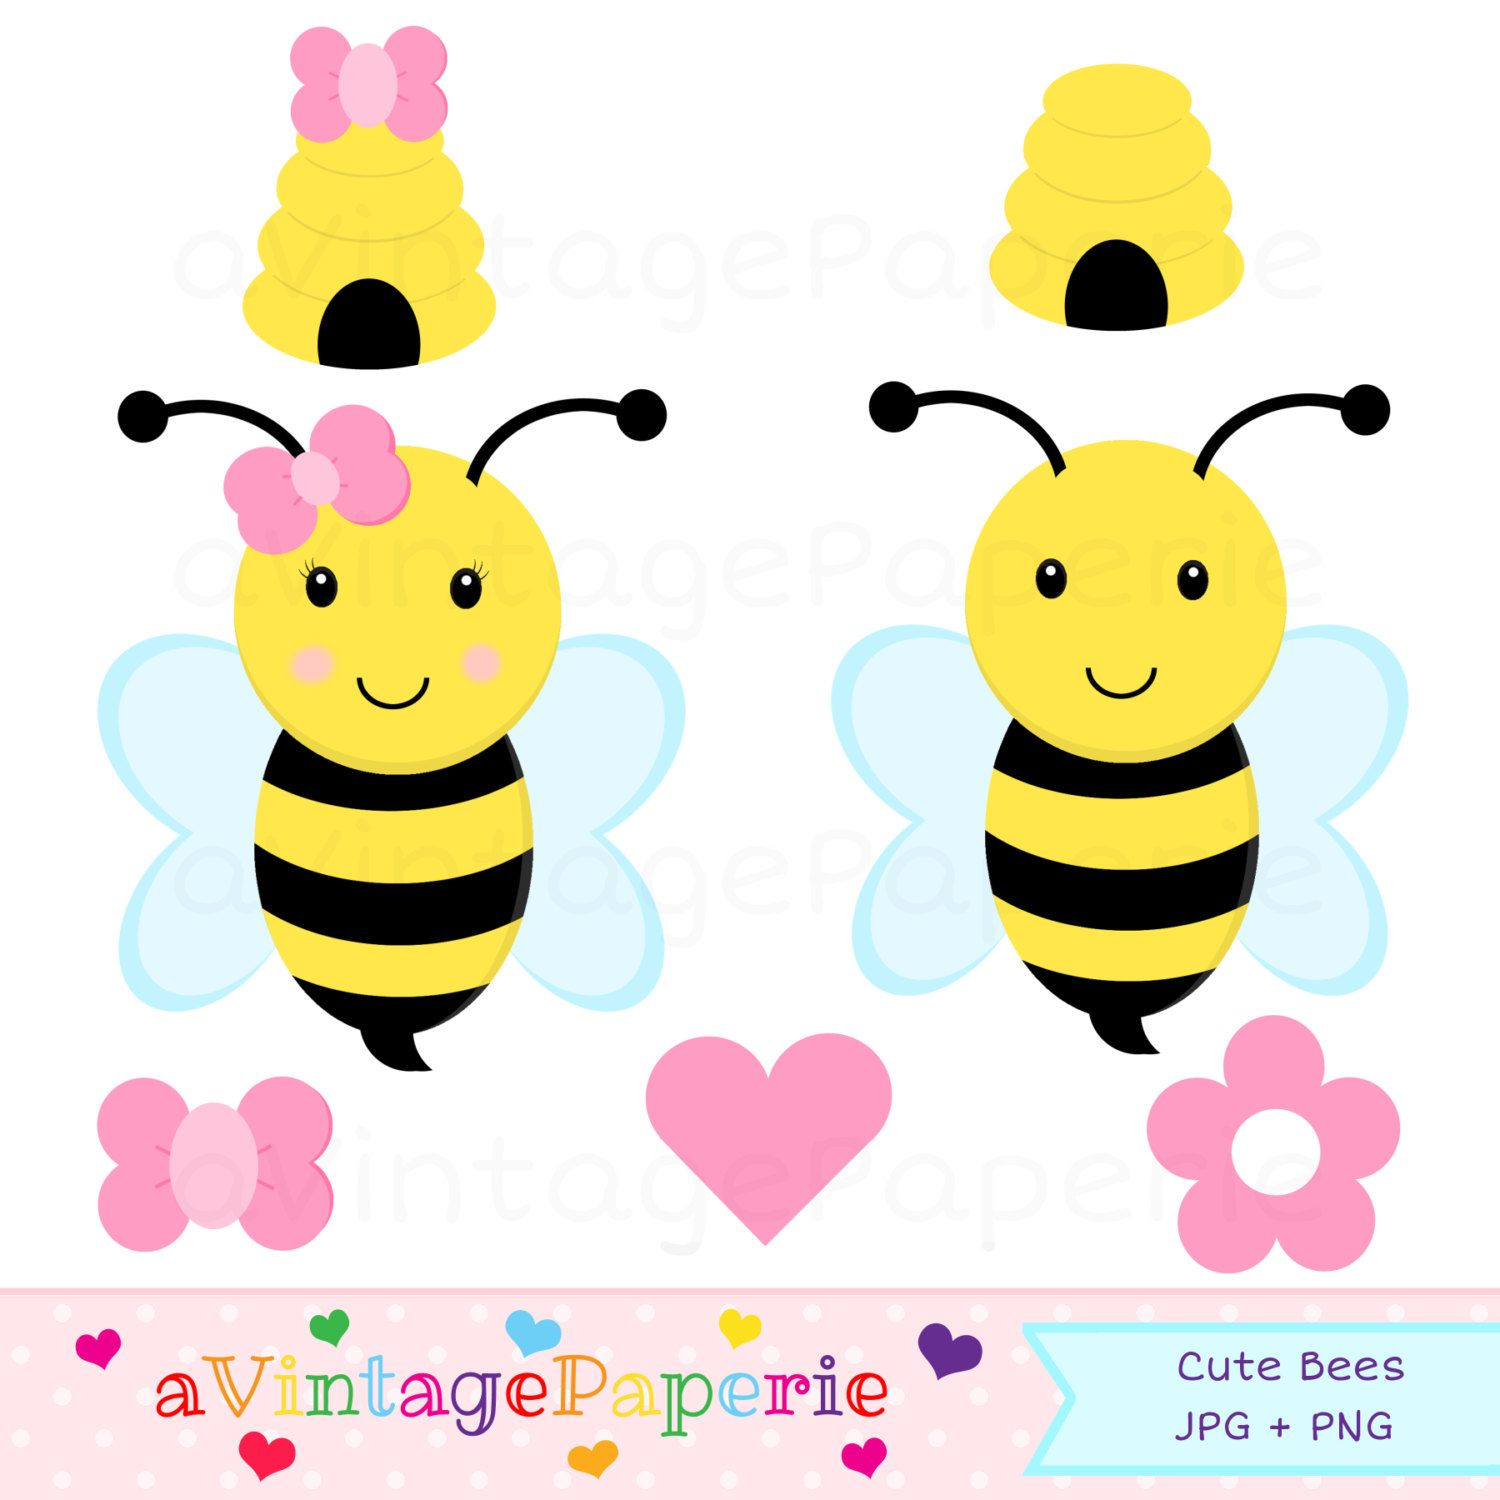 Bumble bee clipart // Bumble bee clip art // Commercial Use Clipart.